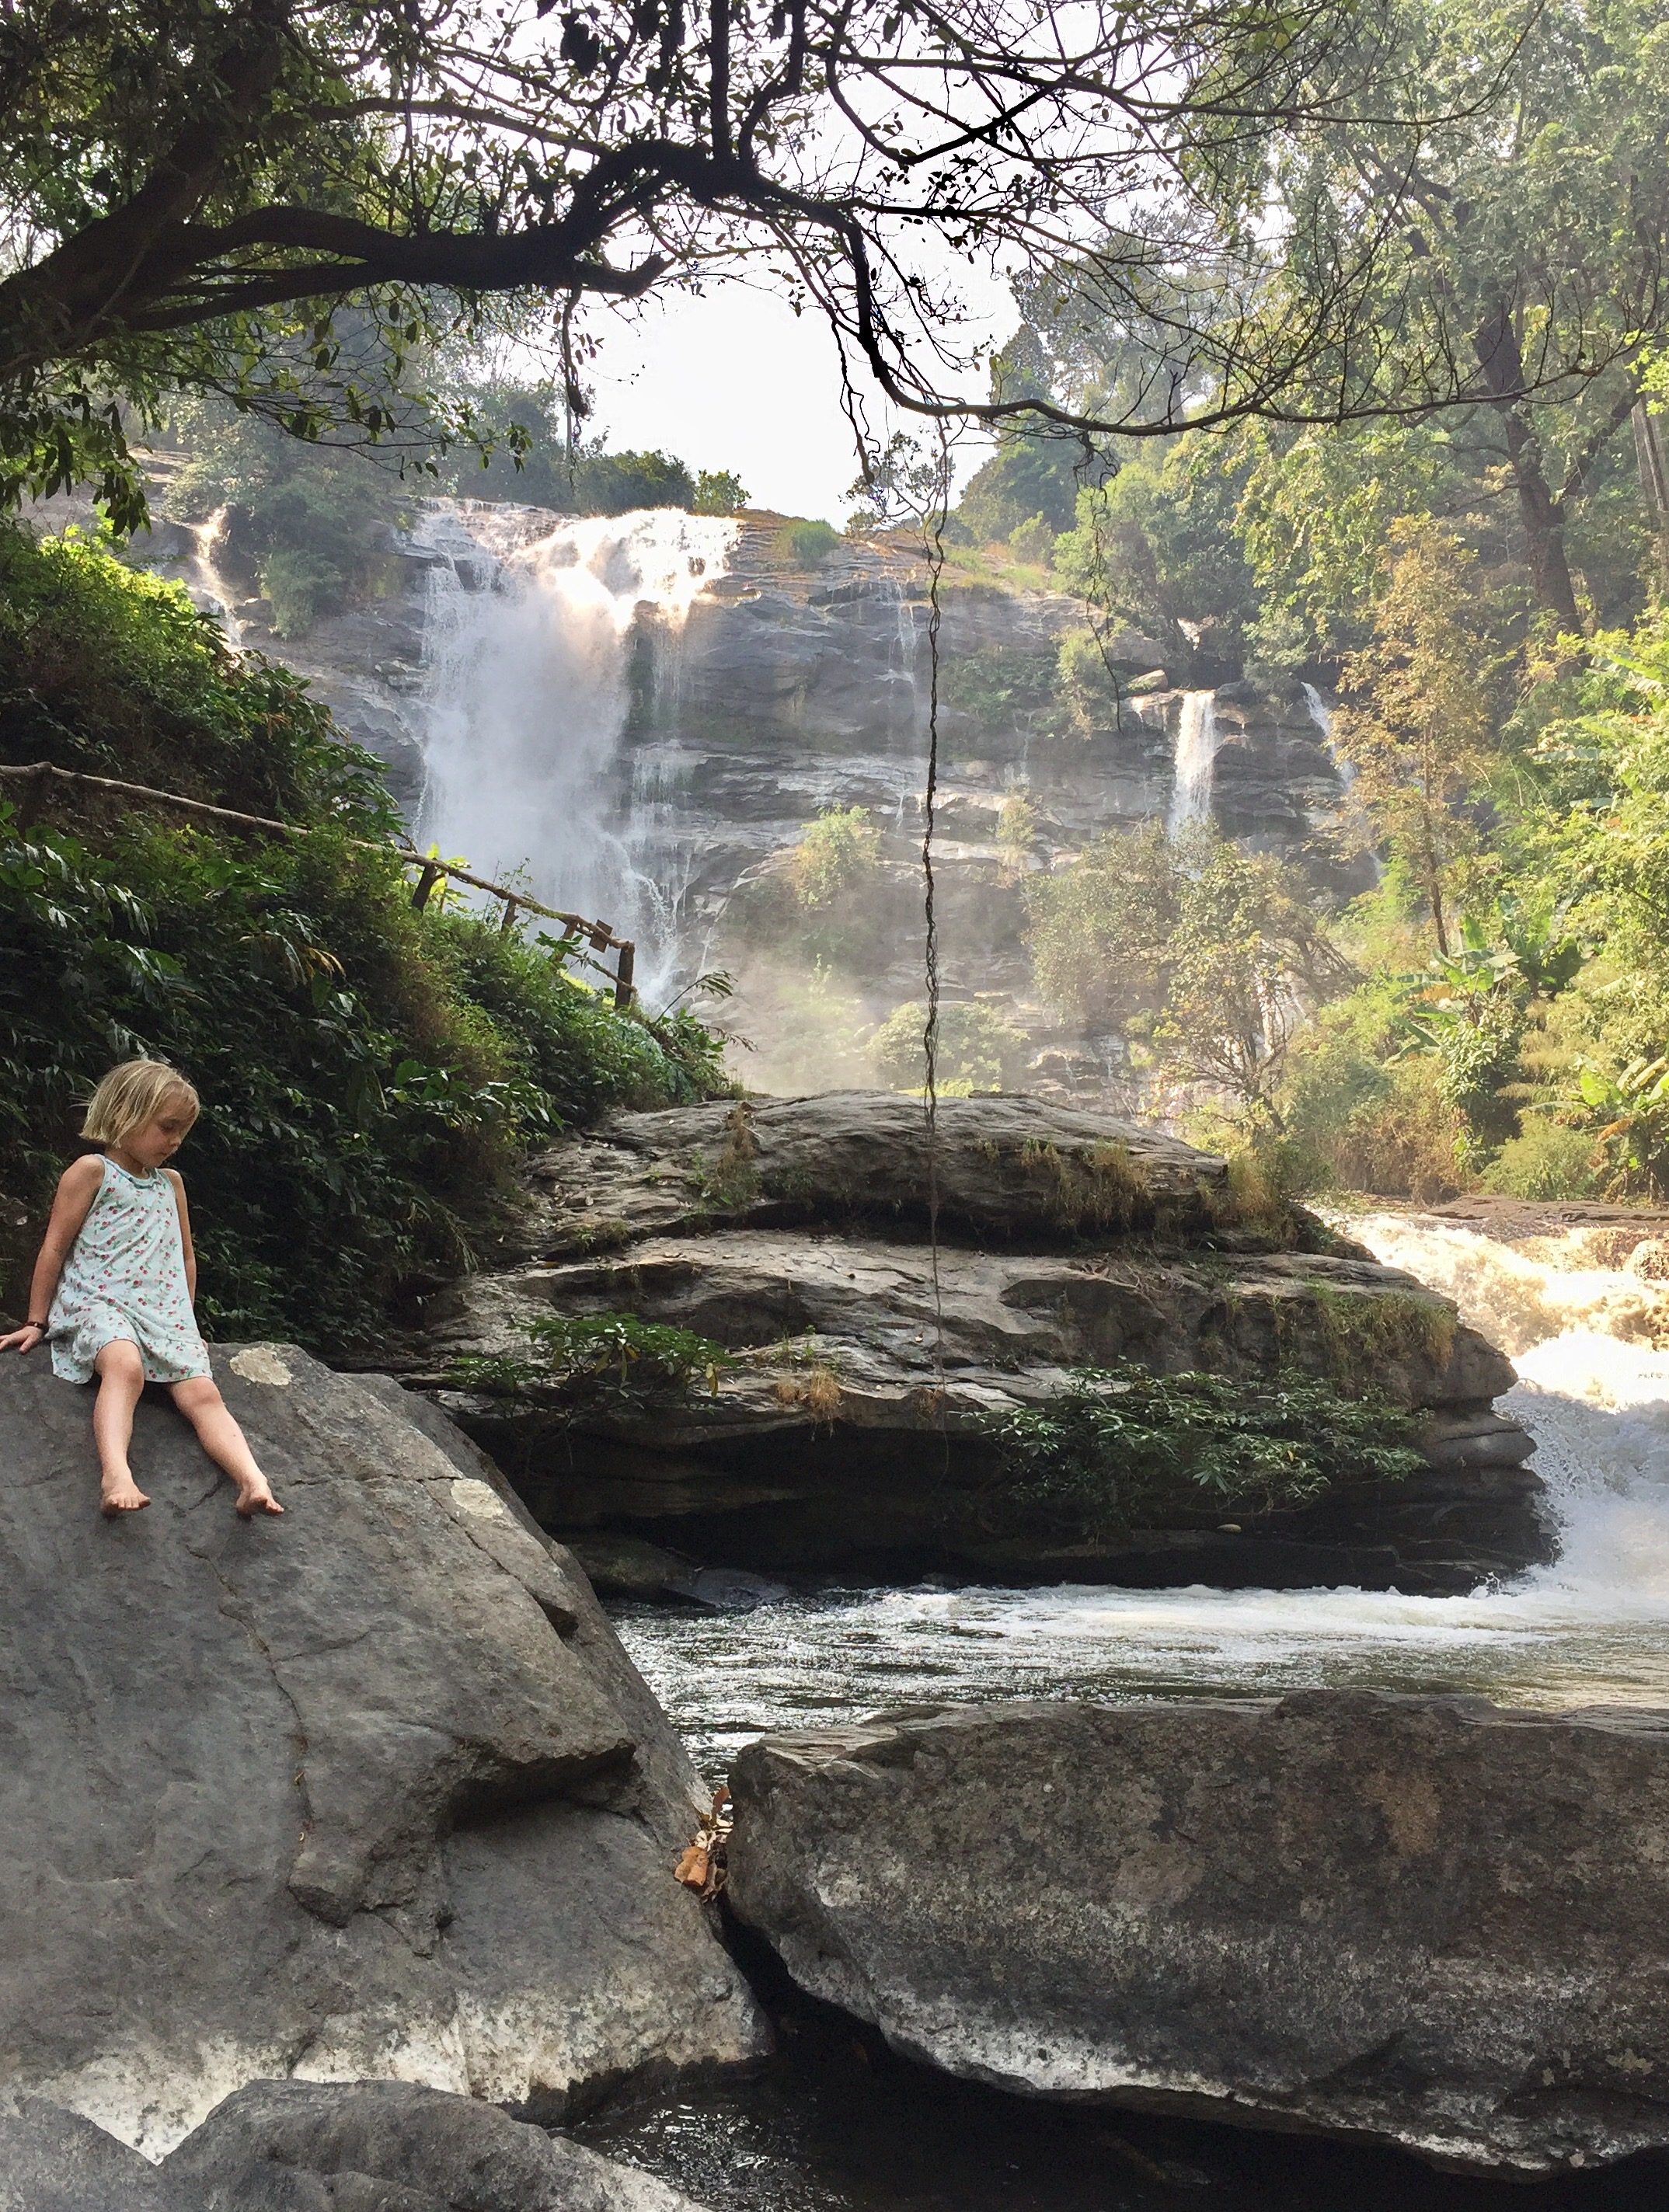 Wachirachan_waterfall_doi_inthanon.jpg